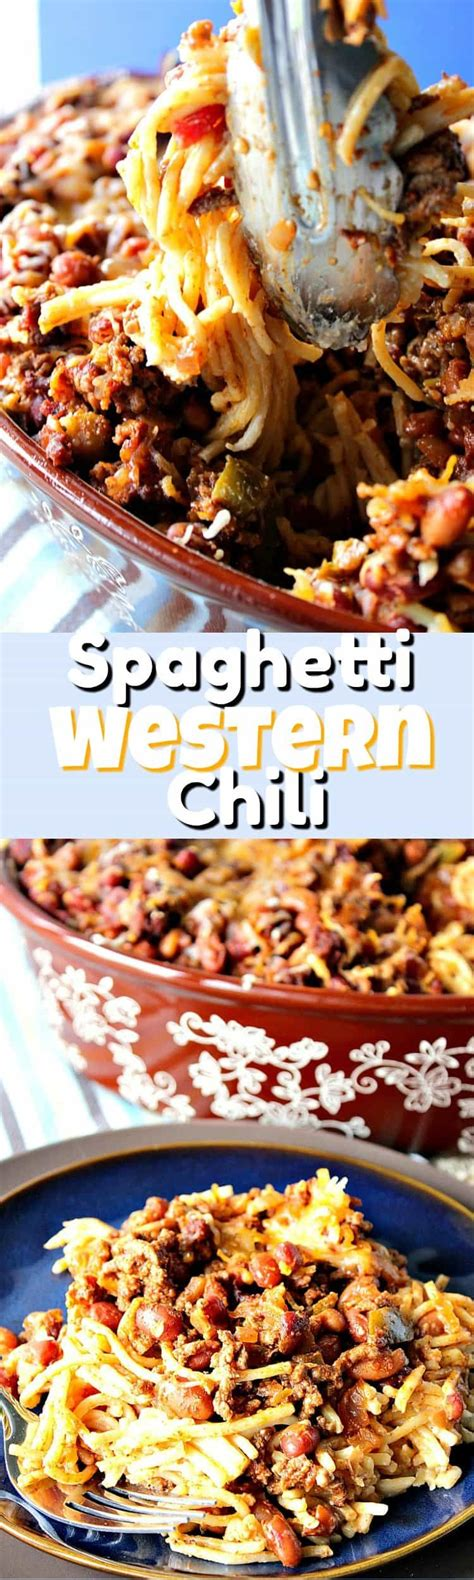 This chili rellenos casserole is very easy to prepare and is loaded with flavor. This Spaghetti Western Chili Casserole is quick to make (30 minutes or less) and can be made in ...